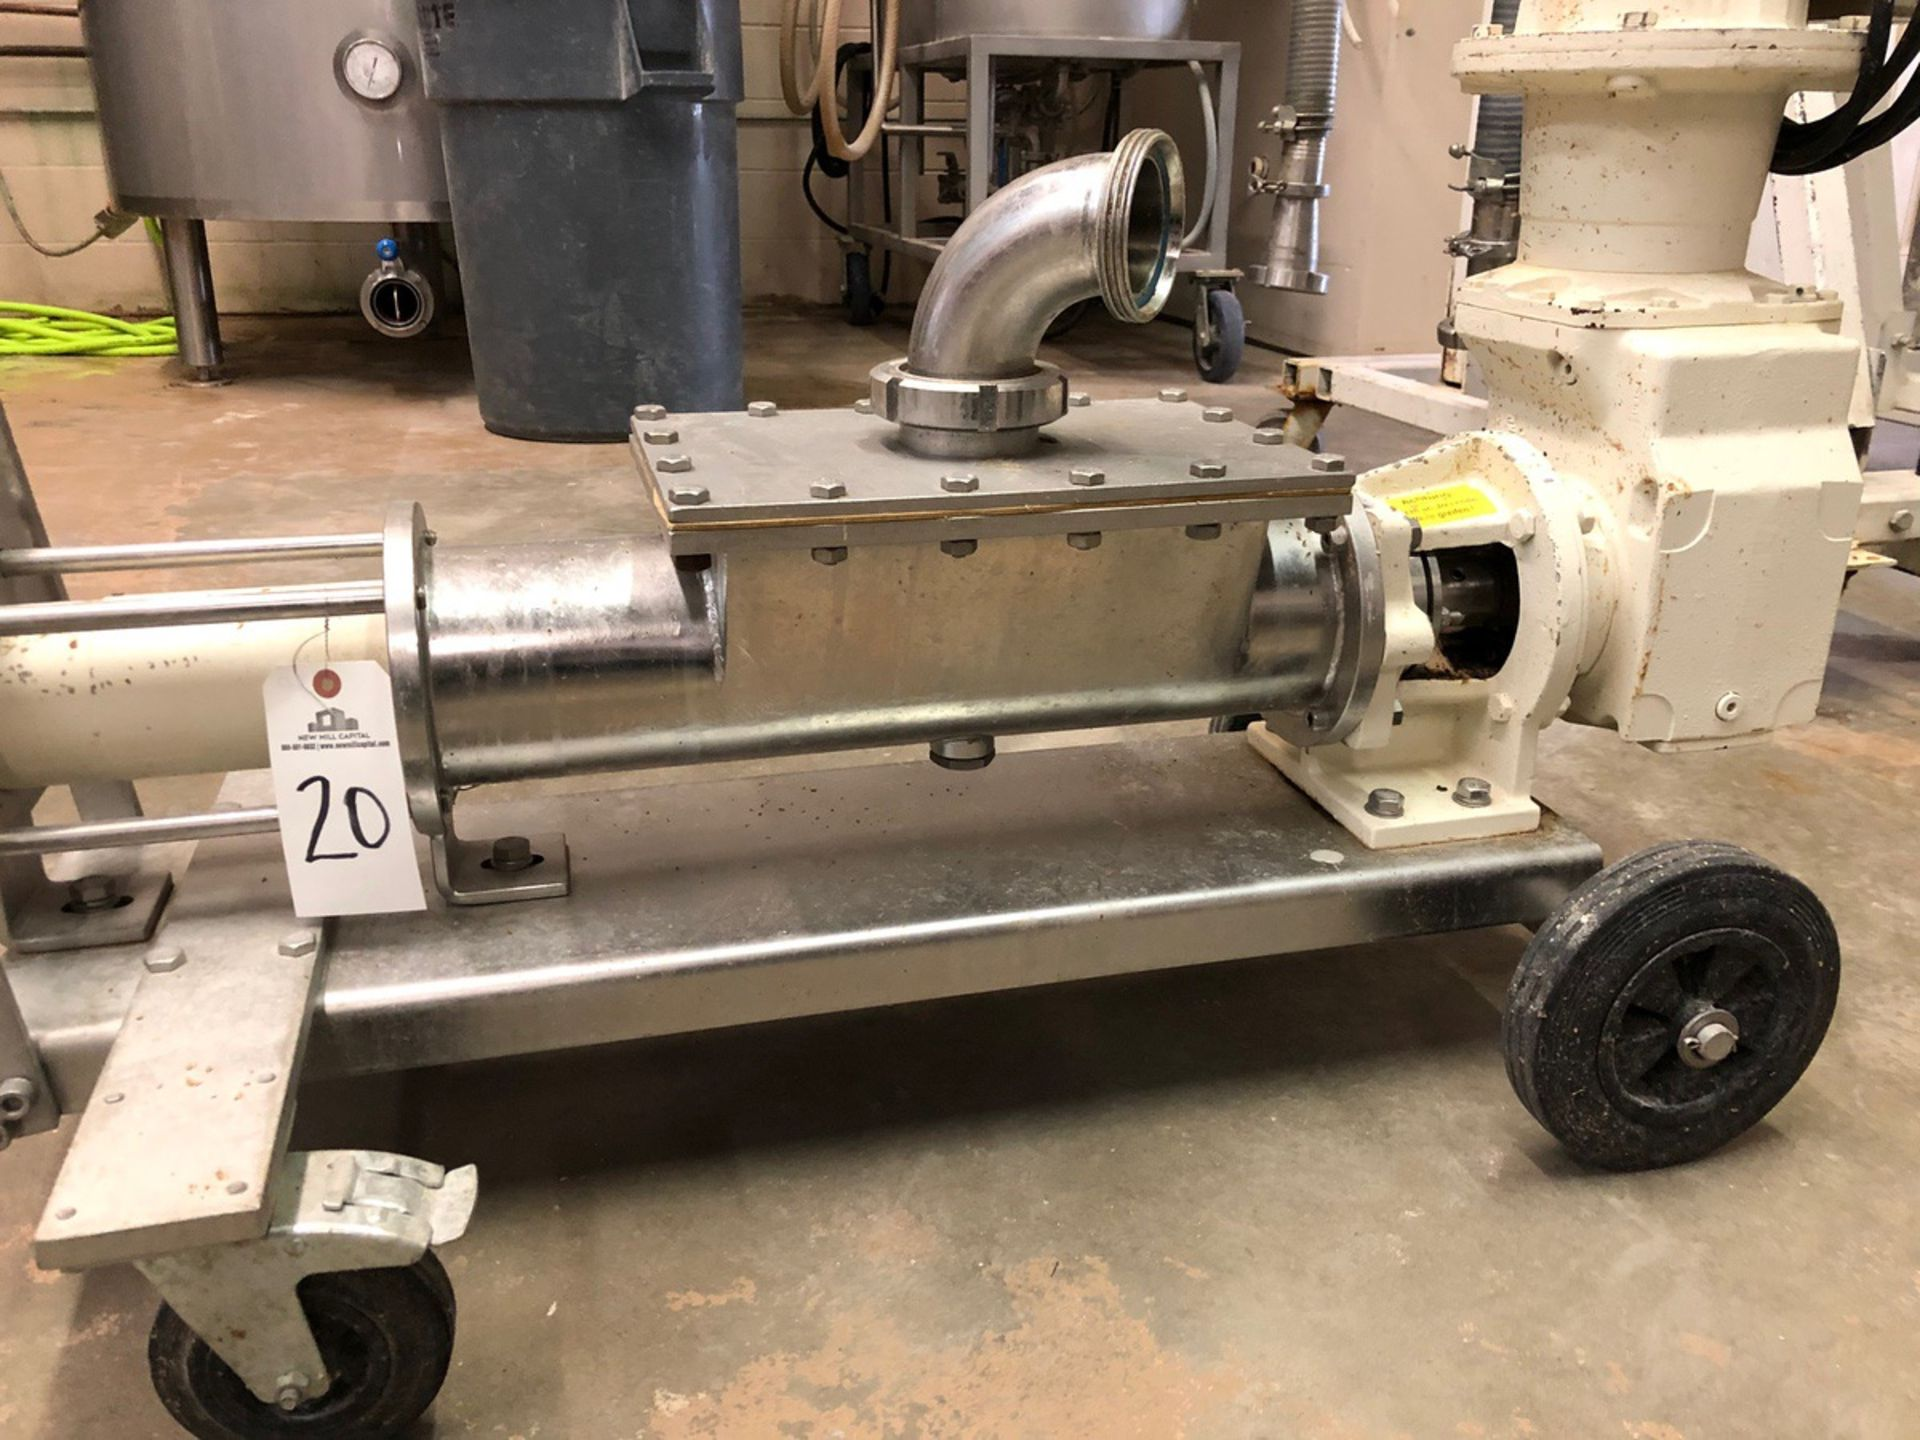 Lot 20 - Mash Screw Displacement Pump, 3KW, 330/400V @ 60Hz | Sub to Bulk | Rig Fee: $75